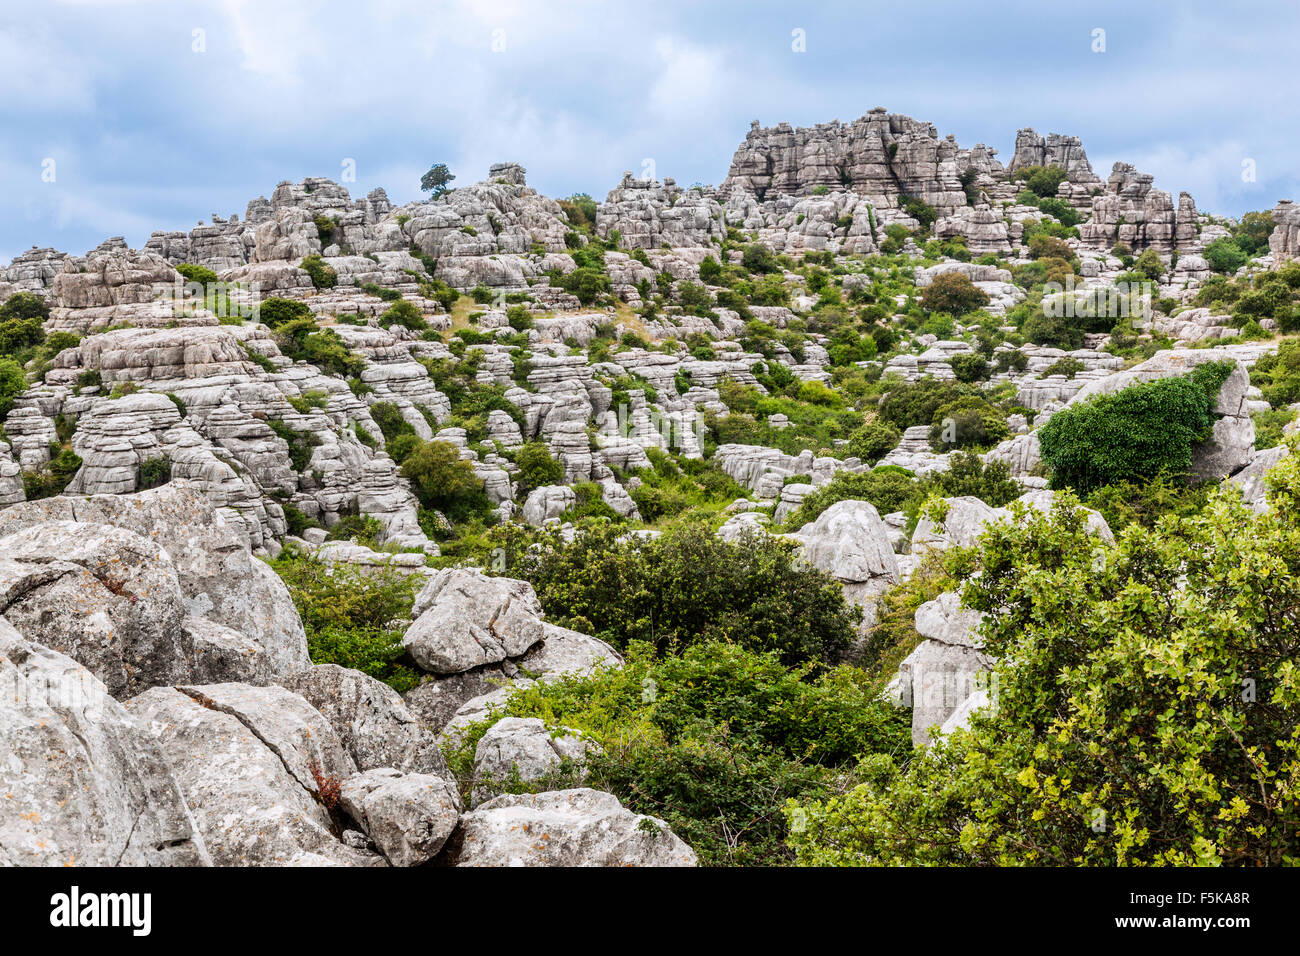 Spain, Andalusia, Province of Malaga, the karstic landscape of the Torcal de Antequera - Stock Image